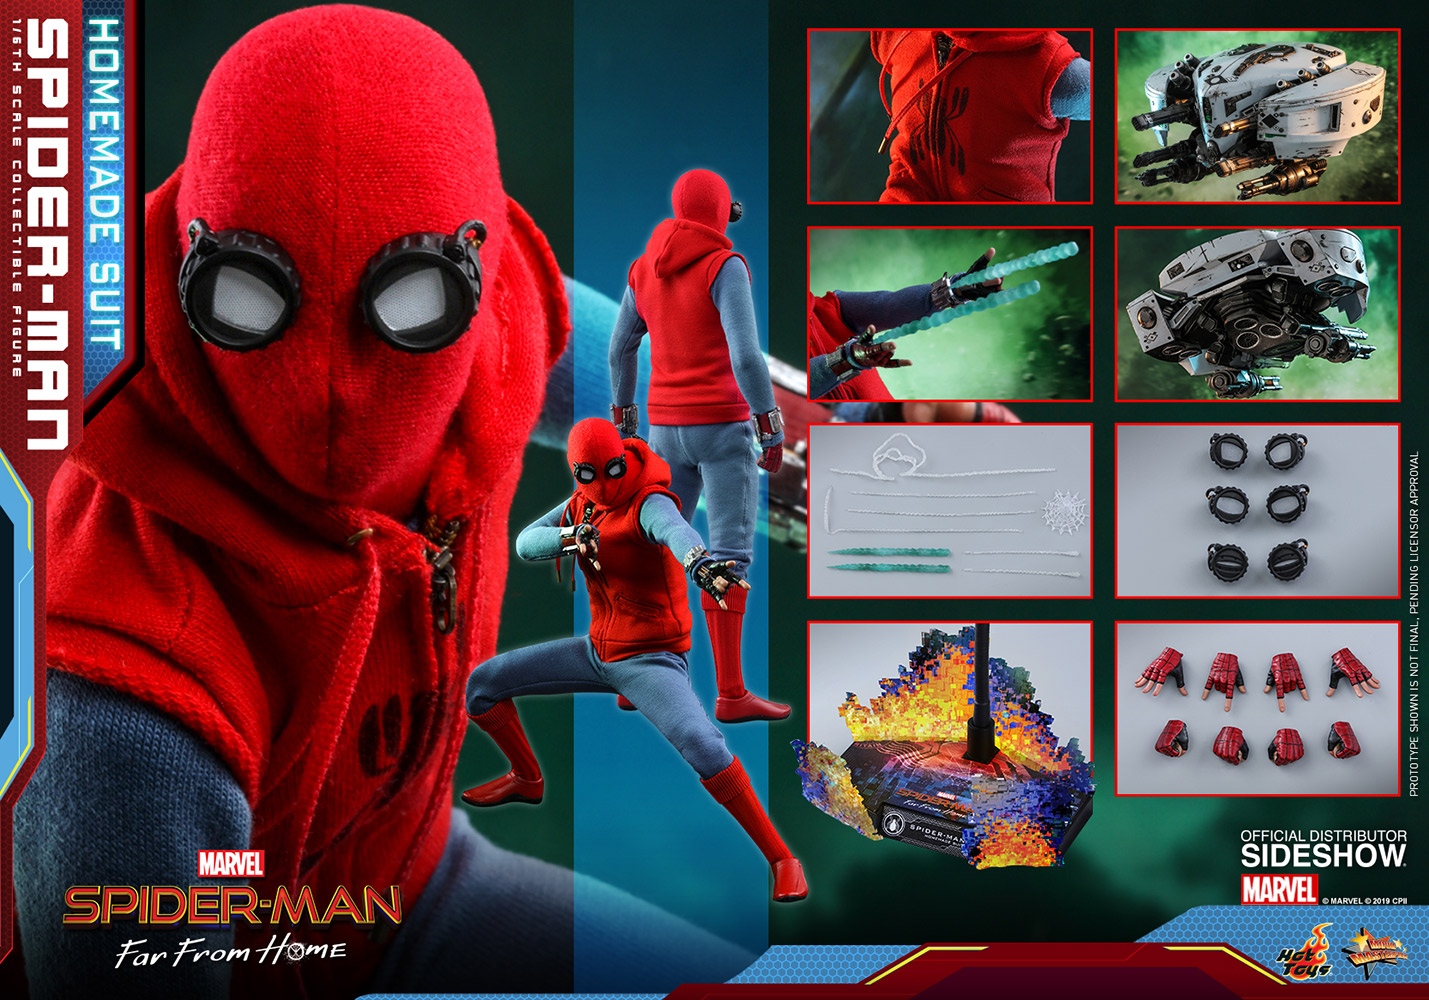 Super Punch Hot Toys Spider-Man With Mysterio Drone -2763